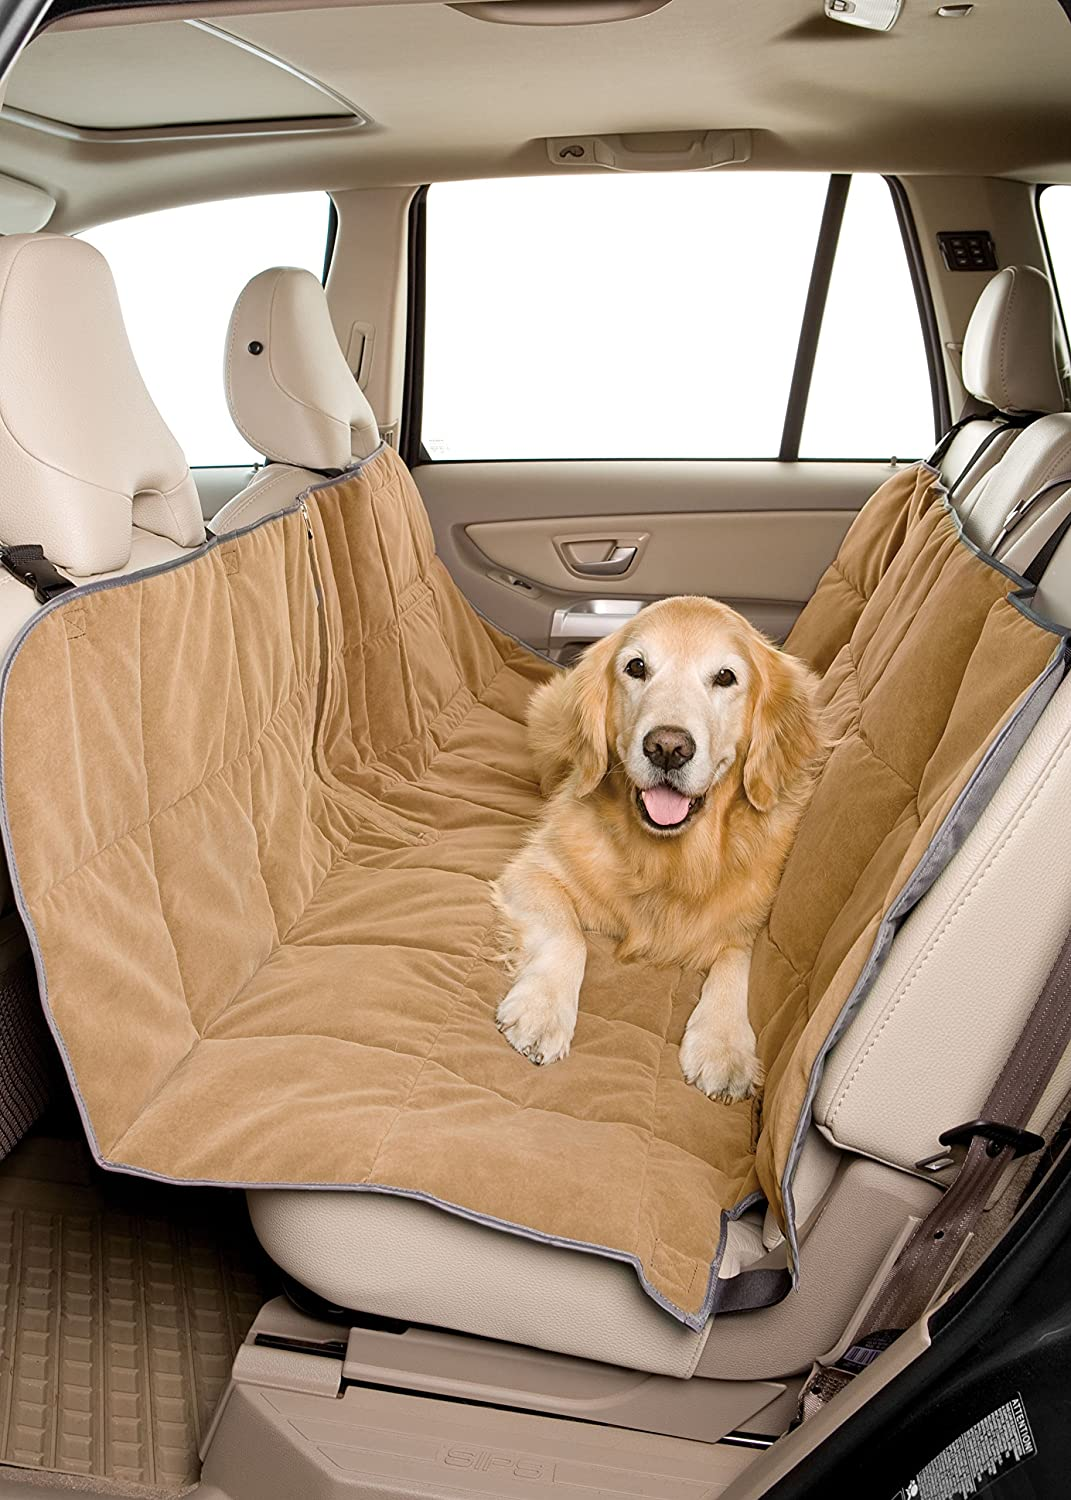 car accessories non carriers viewing hammock mesh pet blanket home protector from seat back cover window mat item in slip dog quilted waterproof